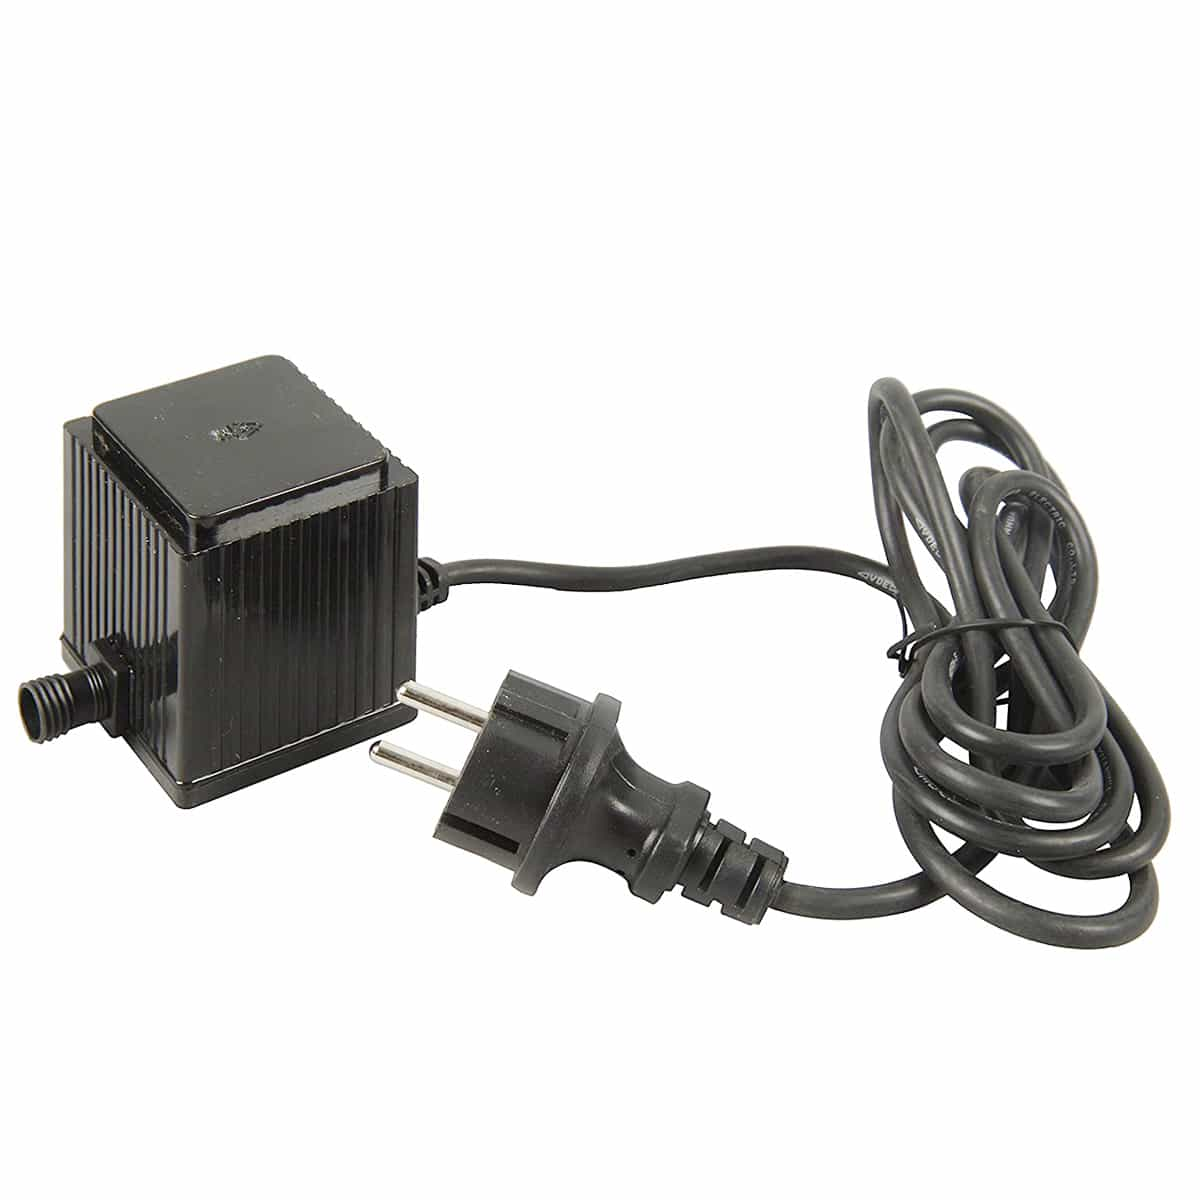 Transformateur ext rieur 12v 50w basse tension eclairage for Transformateur 12v exterieur